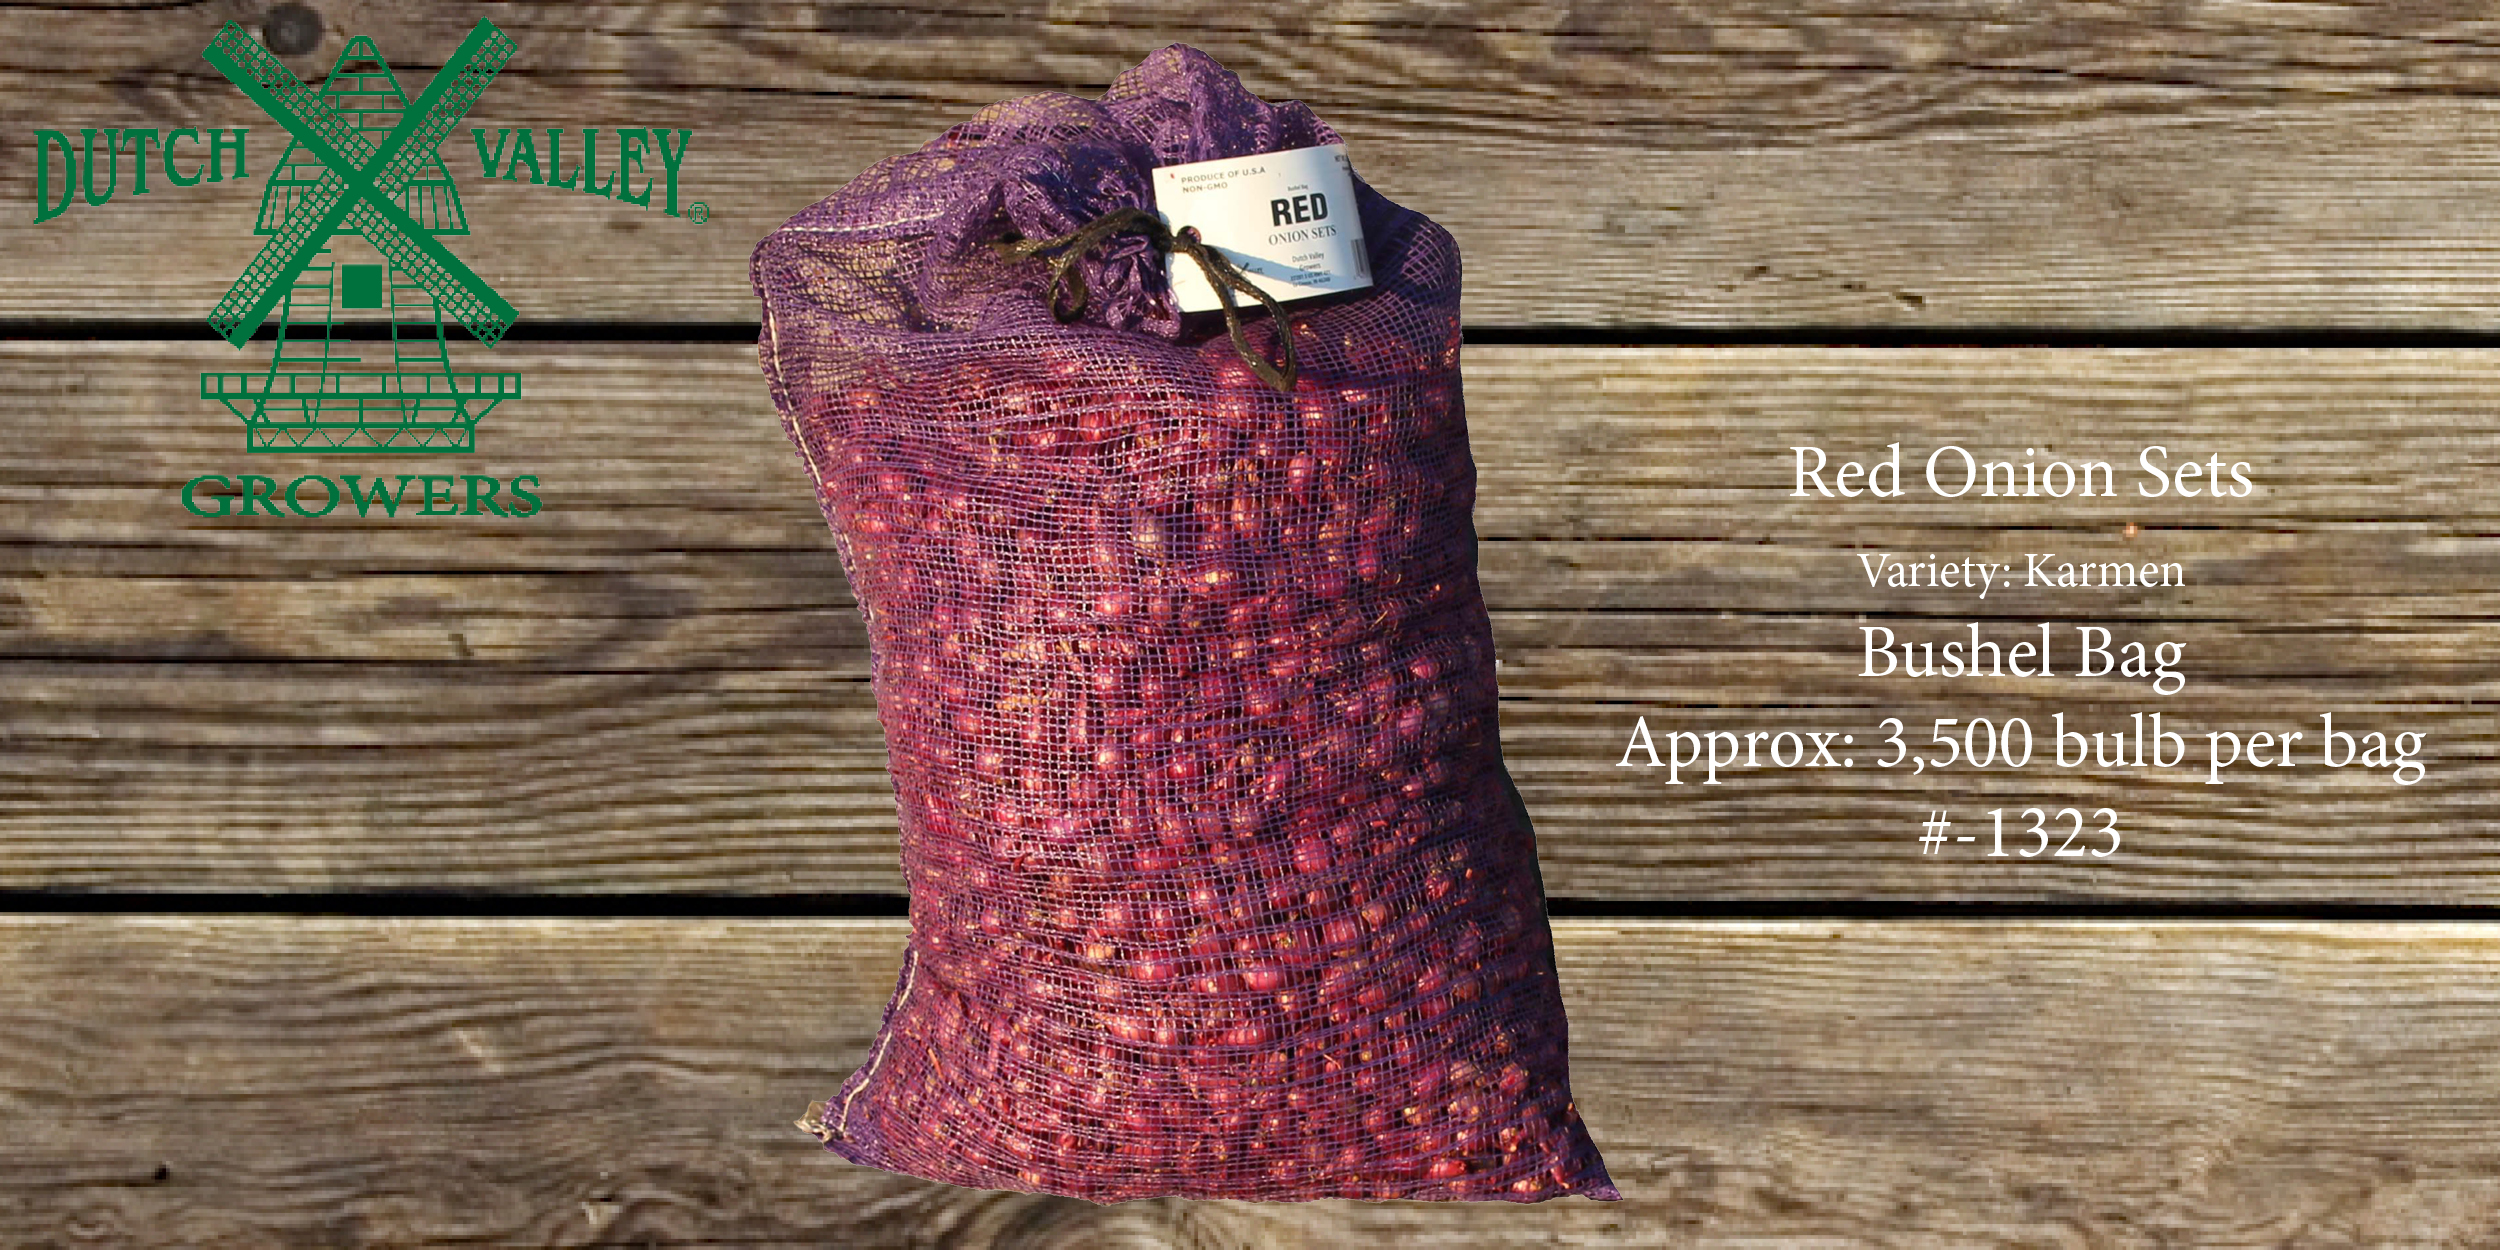 32# Red Onion Sets Bushel Bag